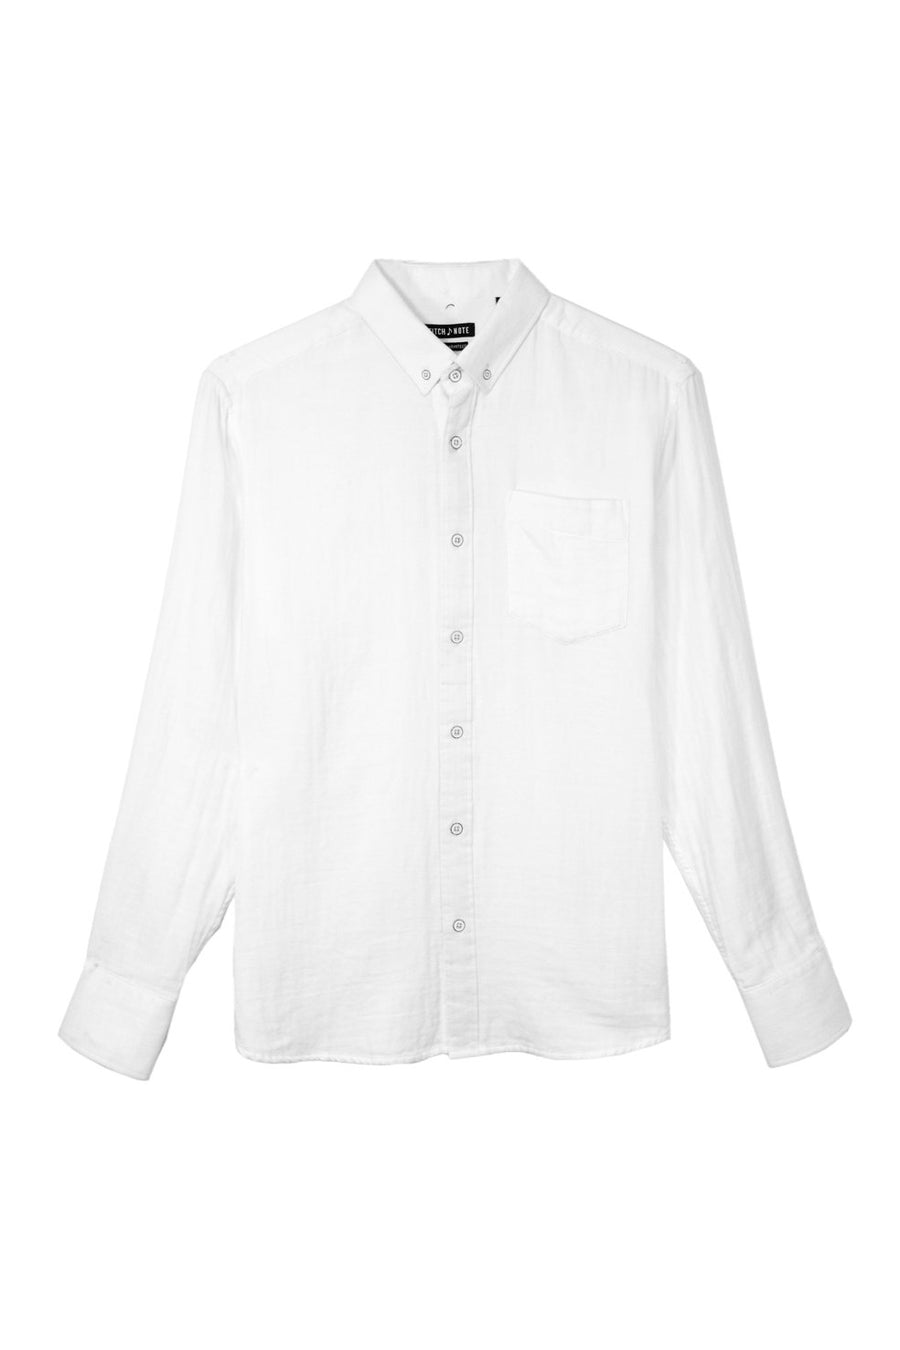 Solid Two Faced Gauze Long Sleeve Button Down - White